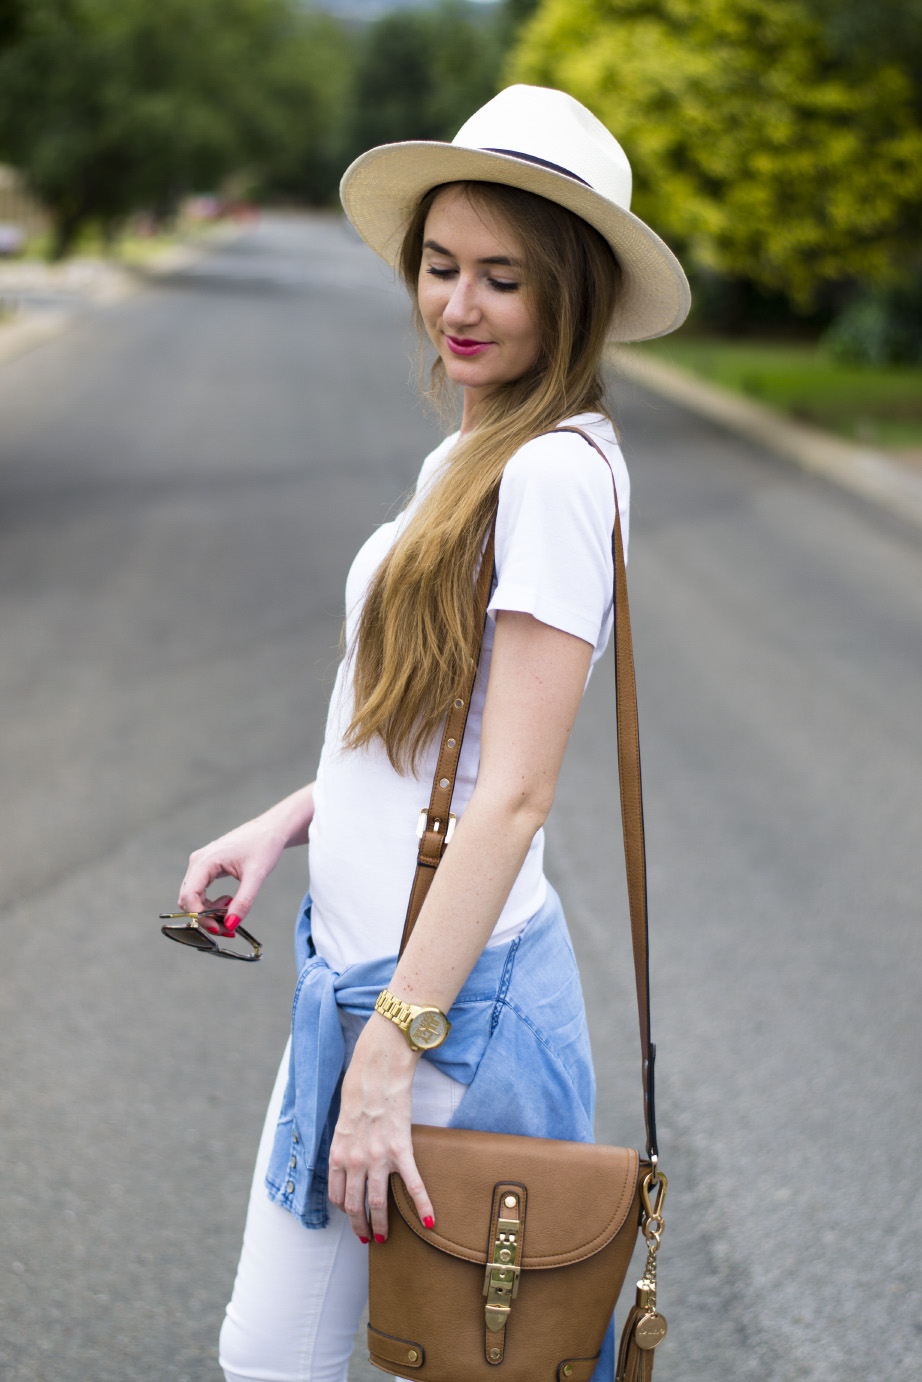 polo - panama - hat - foschini chambray shirt - woolworths t-shirt - dune london bag